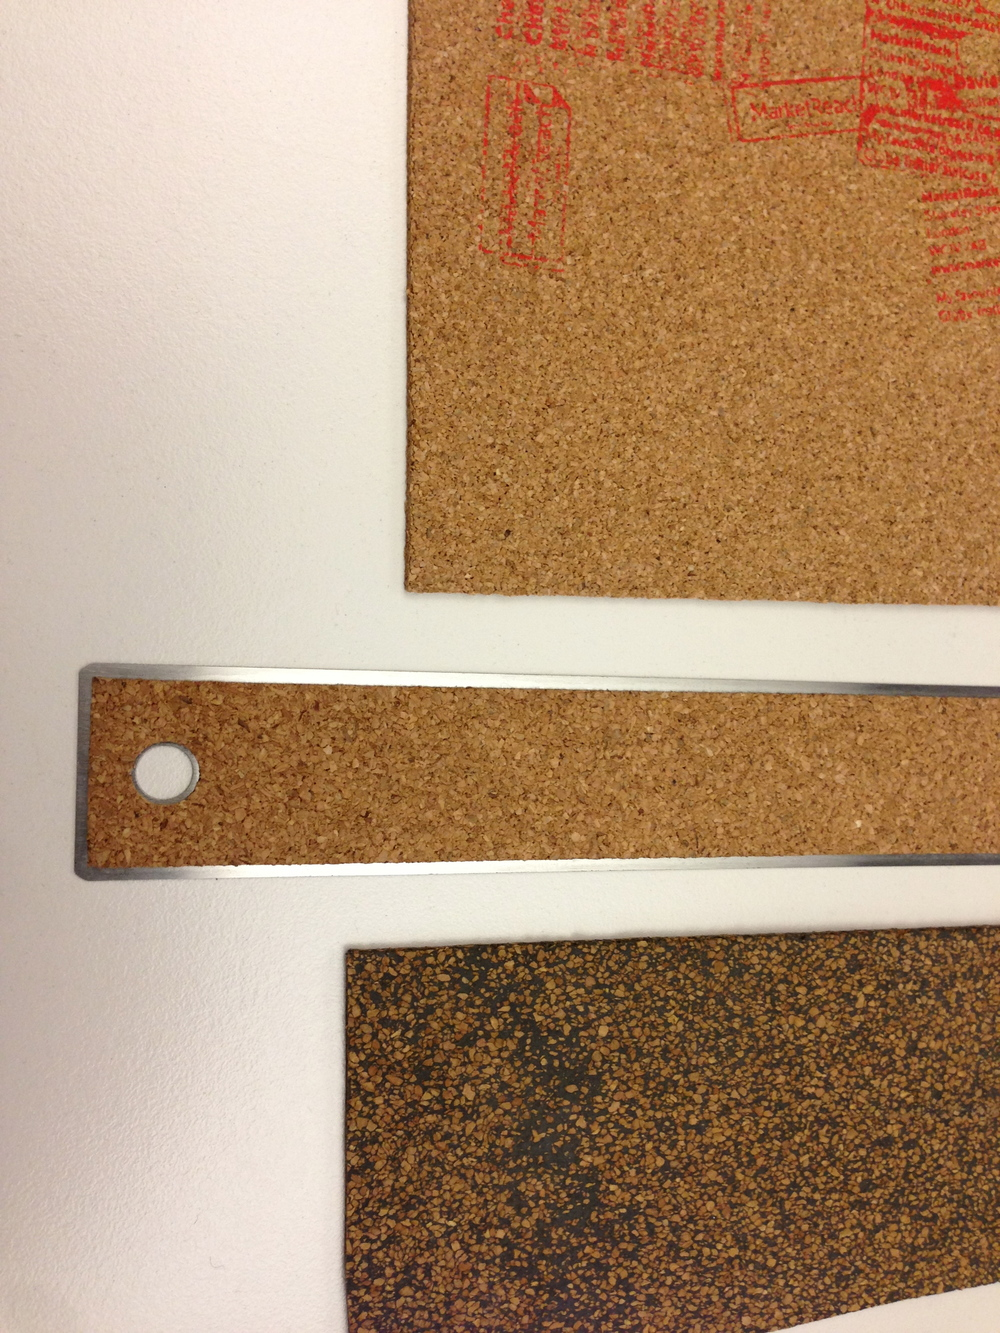 Two types of cork available, normal and nitrile composite. We chose the nitrile as it would allow us to print in white...even though it wasn't quite authentic.